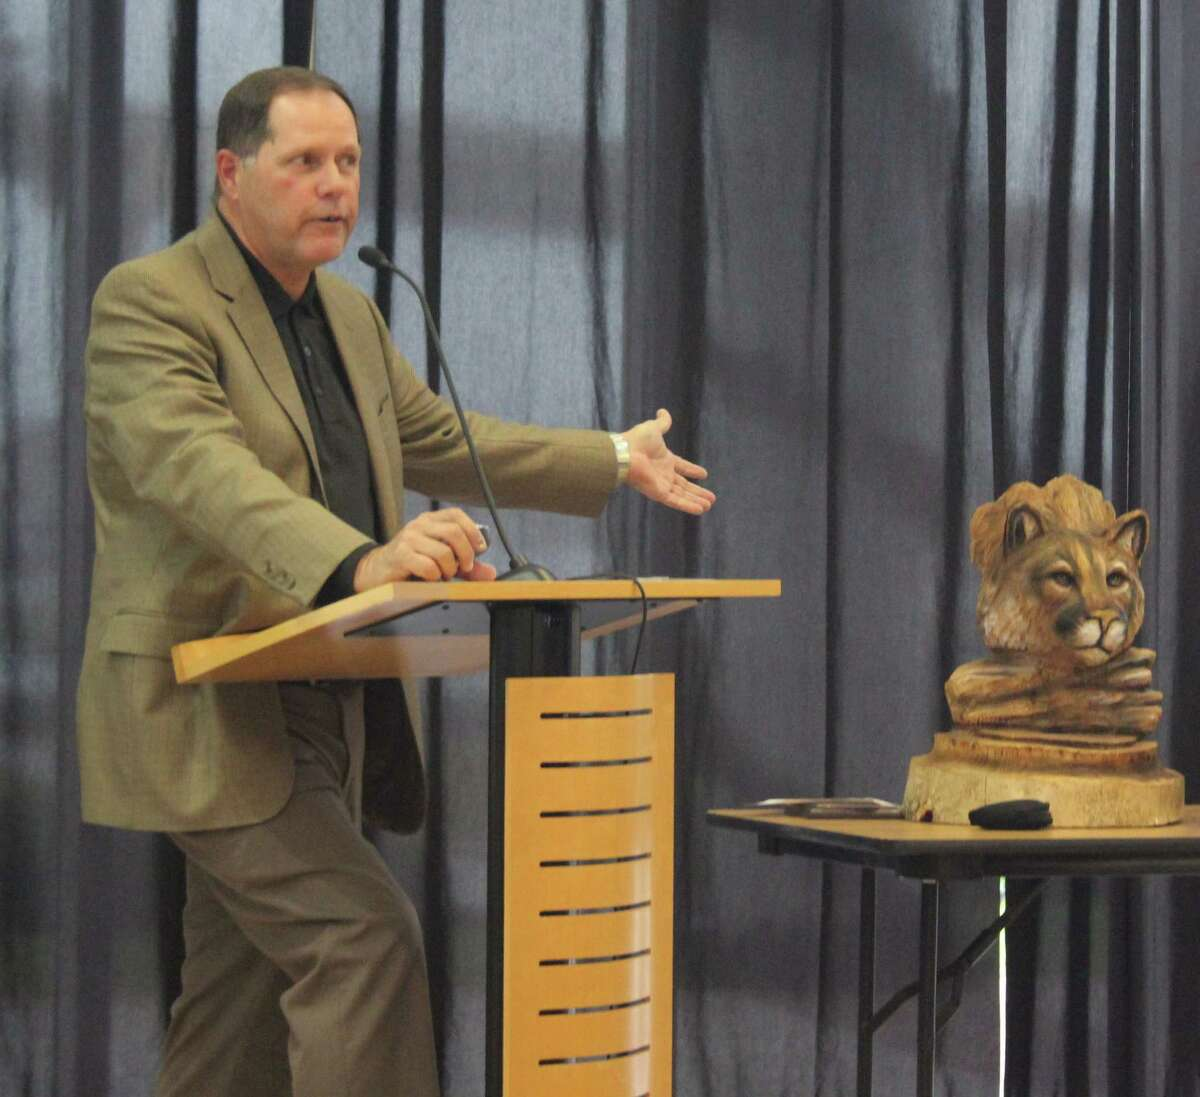 Greater East Montgomery County Chamber President Rick Hatcher displays a wood carving of a cougar, which was created by a chainsaw woodcarver at the Texas Sawmill Festival held on Nov. 11.